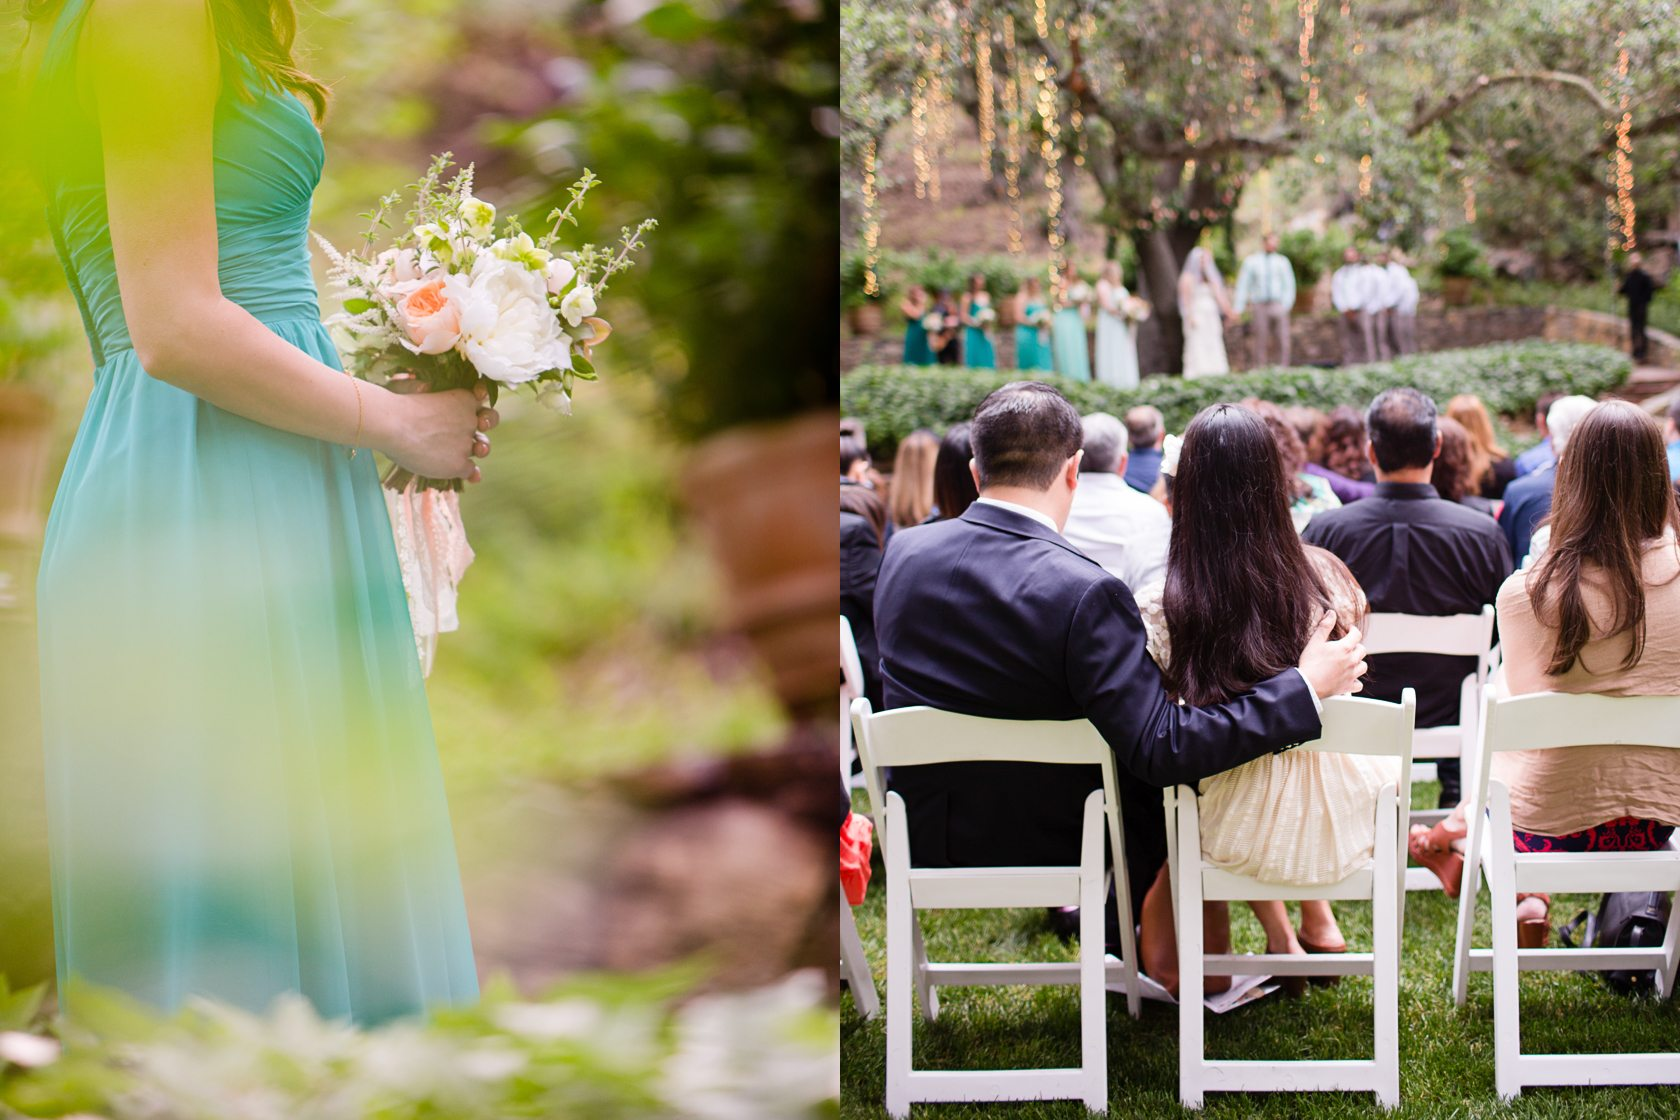 The_Printed_Palette_Wedding_at_Calamigos_Ranch_073.jpg